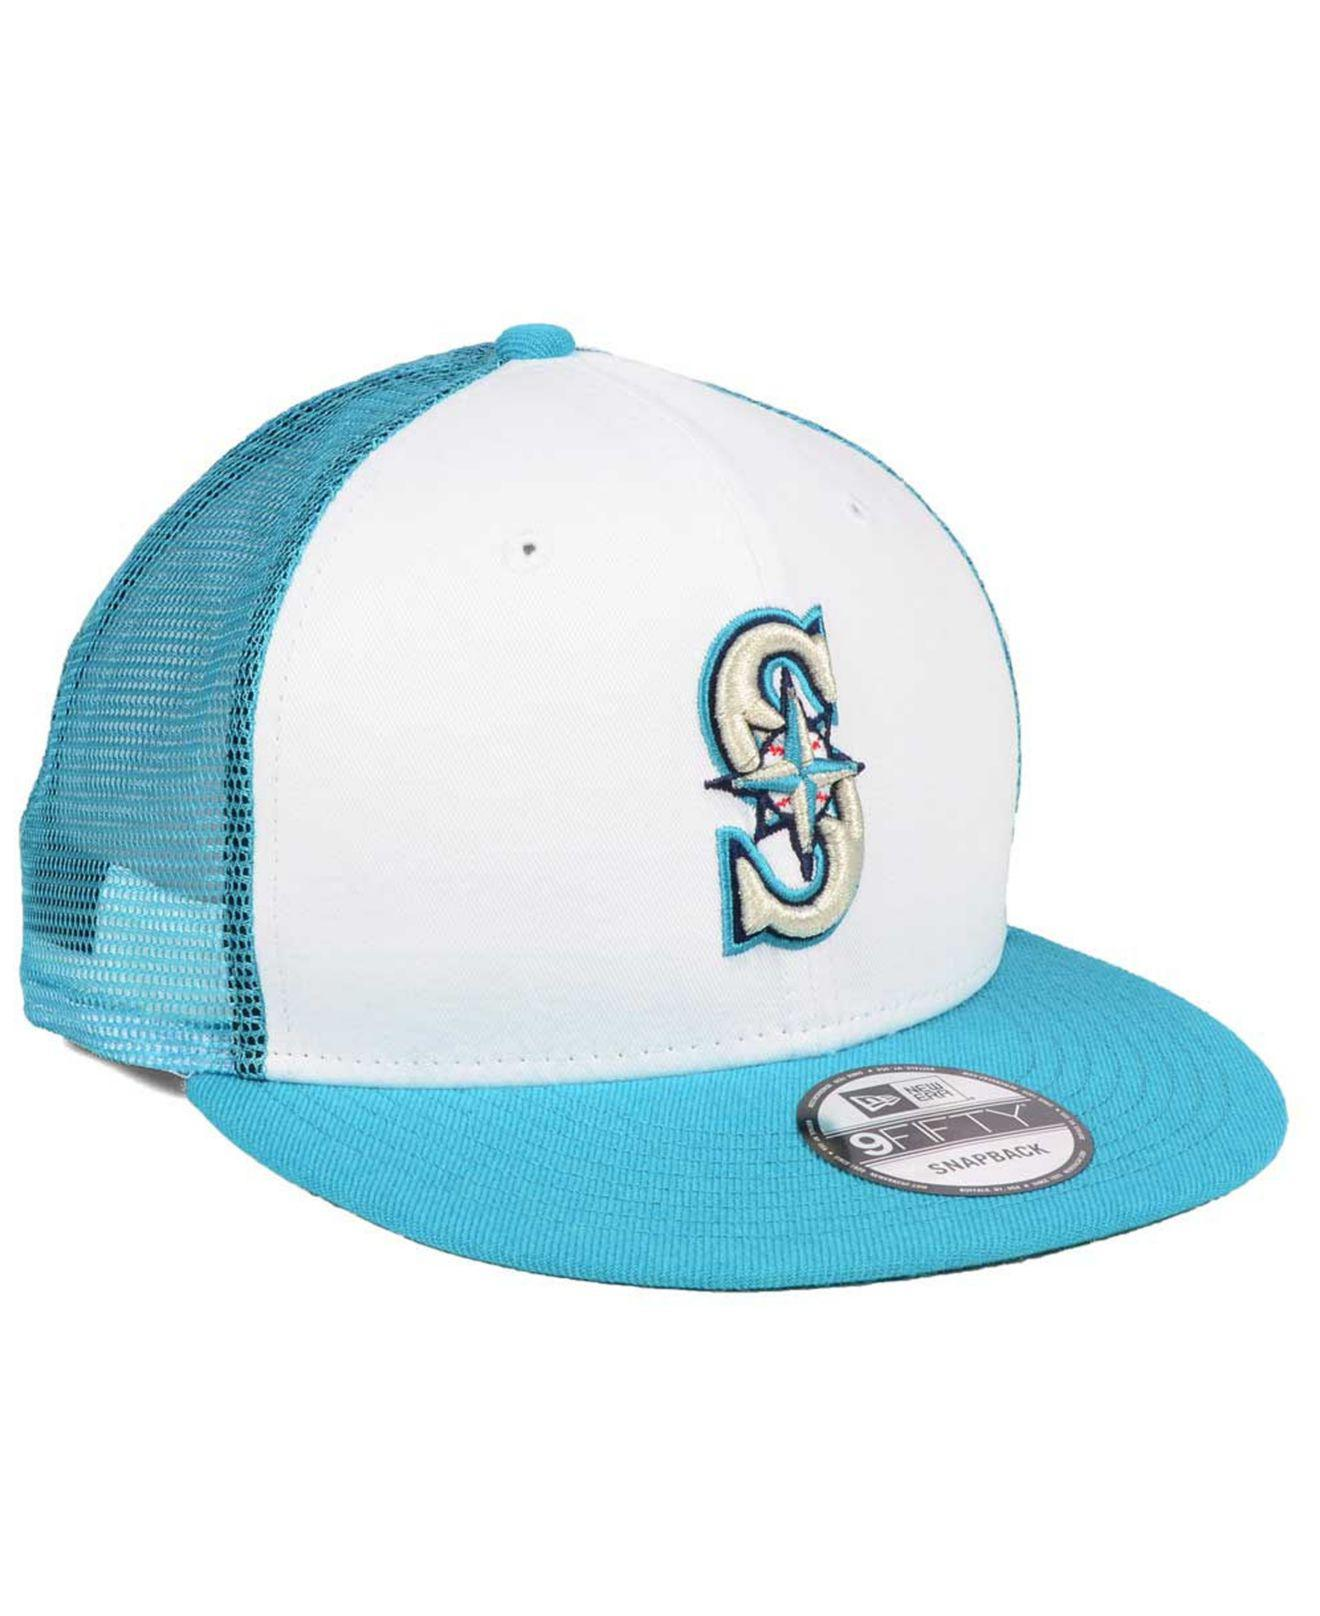 new style 14a73 6d721 ... where to buy lyst ktz seattle mariners old school mesh 9fifty snapback  cap in 27eb7 4a458 ...